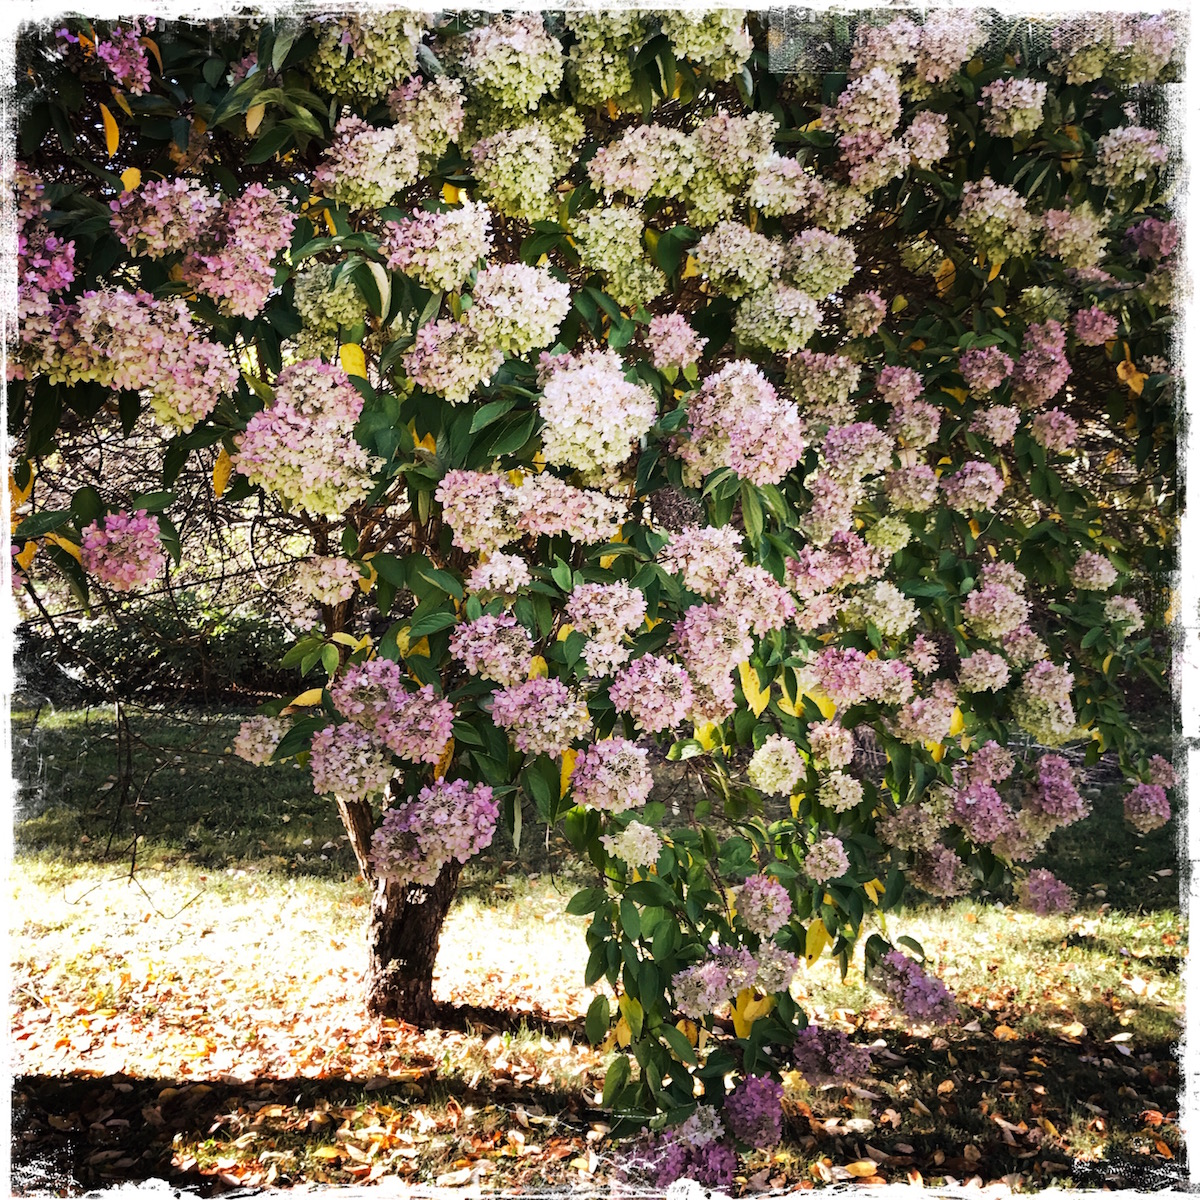 Pink Hydrangea Tree, photo by Barbara Sinclair